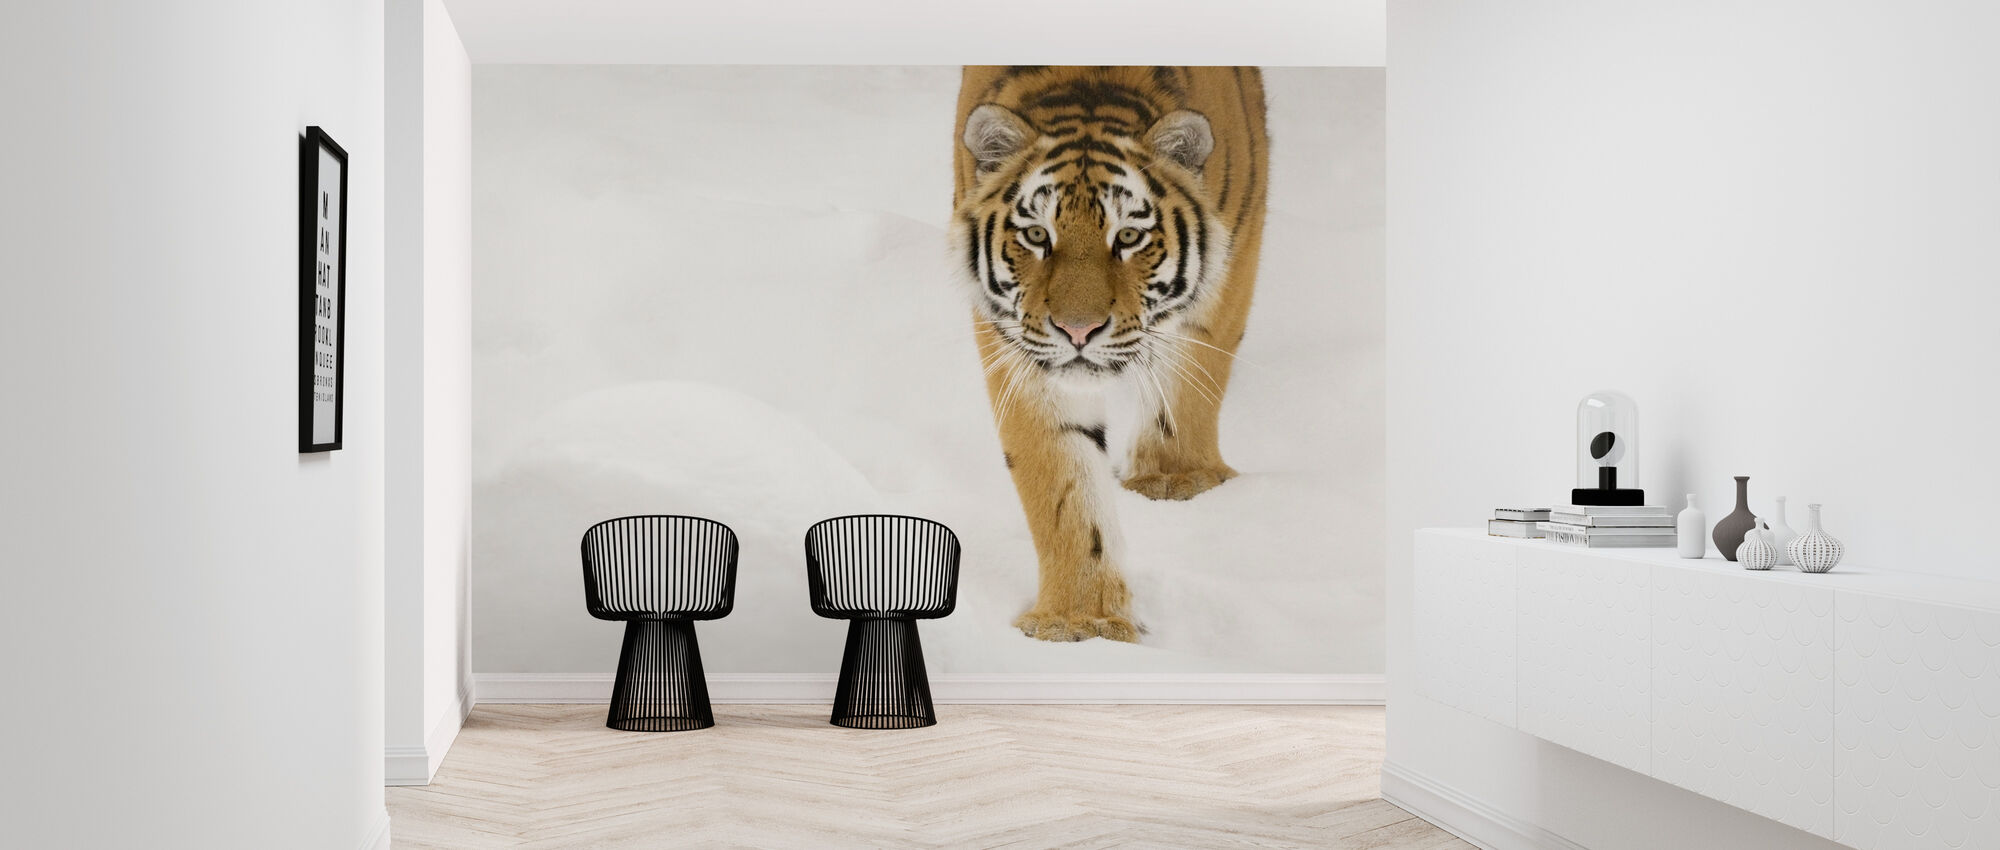 Siberian Tiger - Wallpaper - Hallway